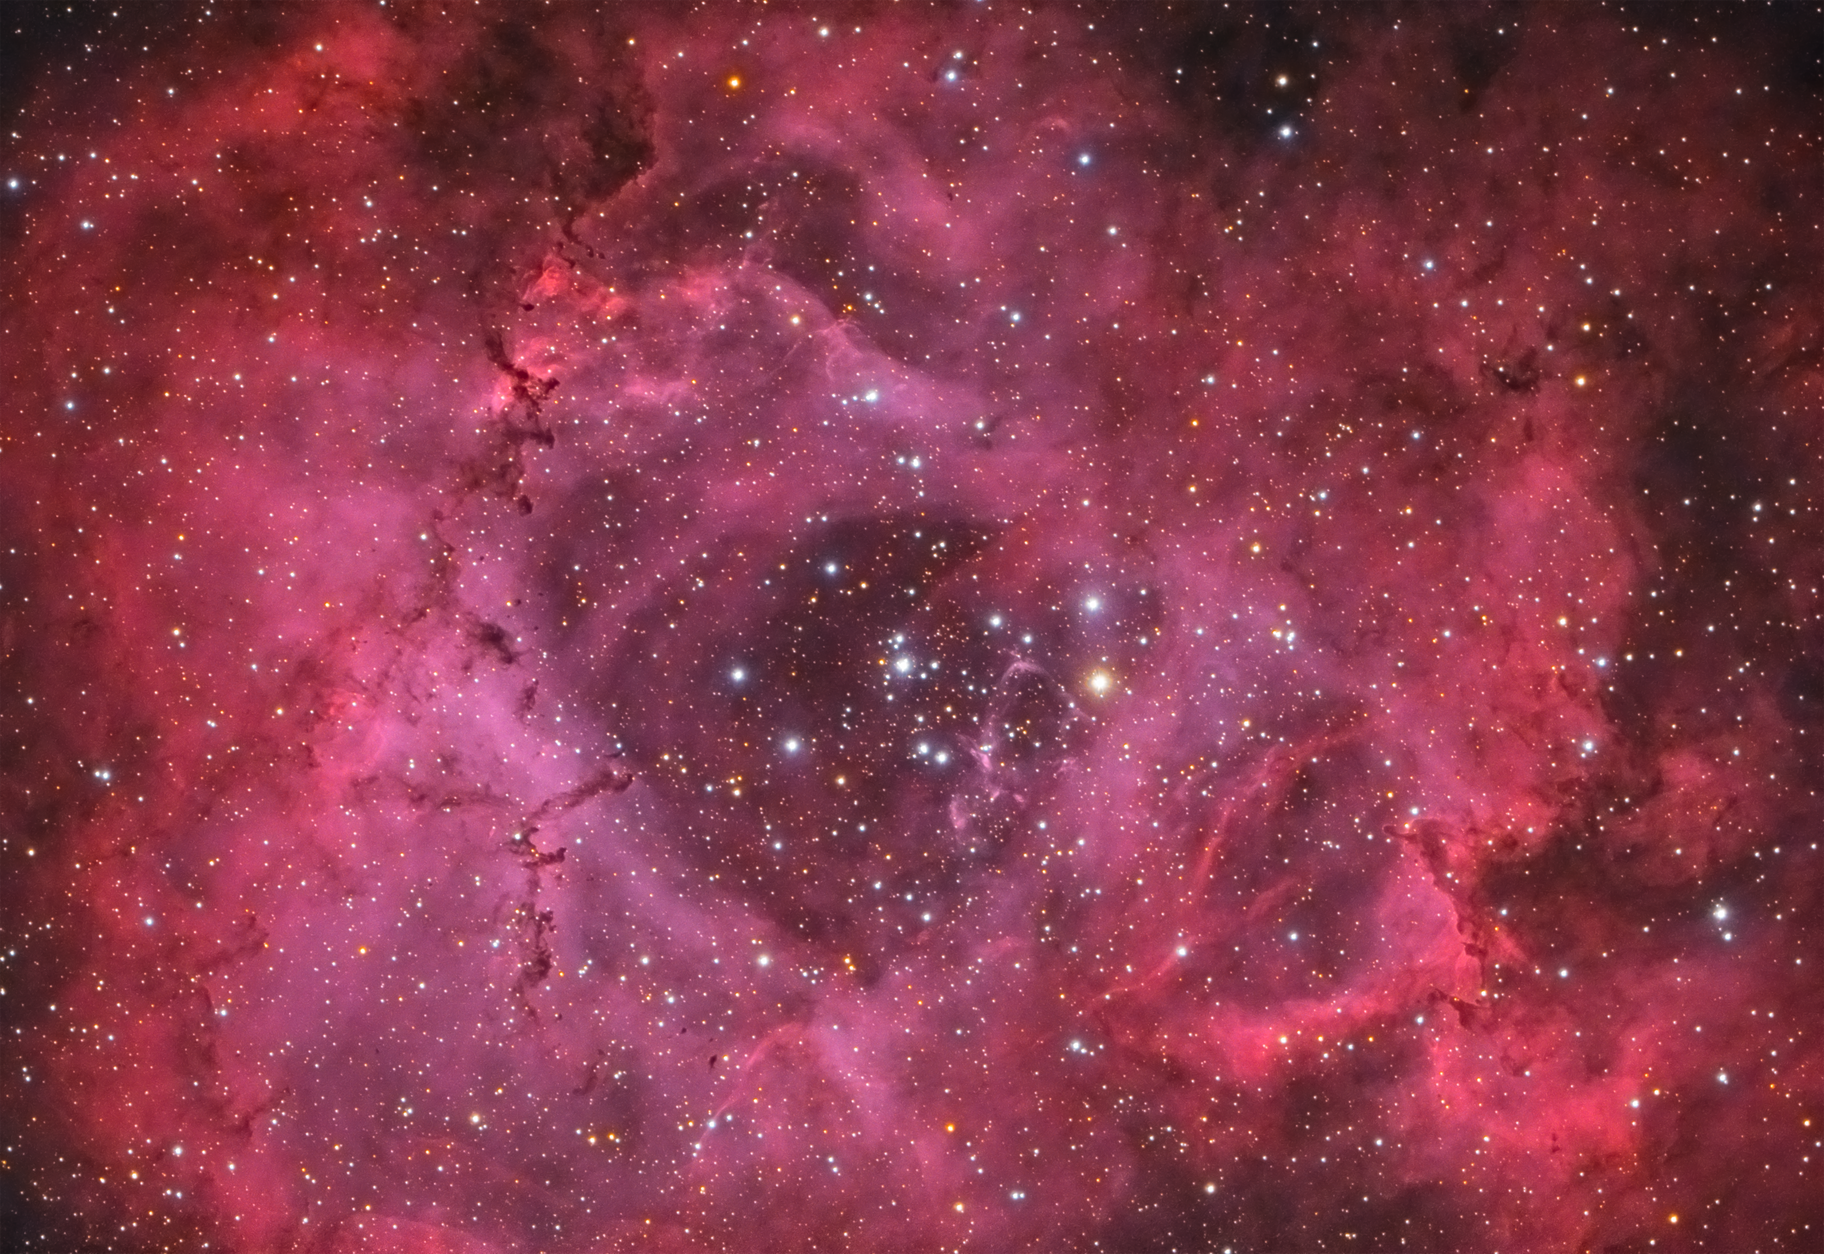 NGC 2244 The Heart of the Rosette